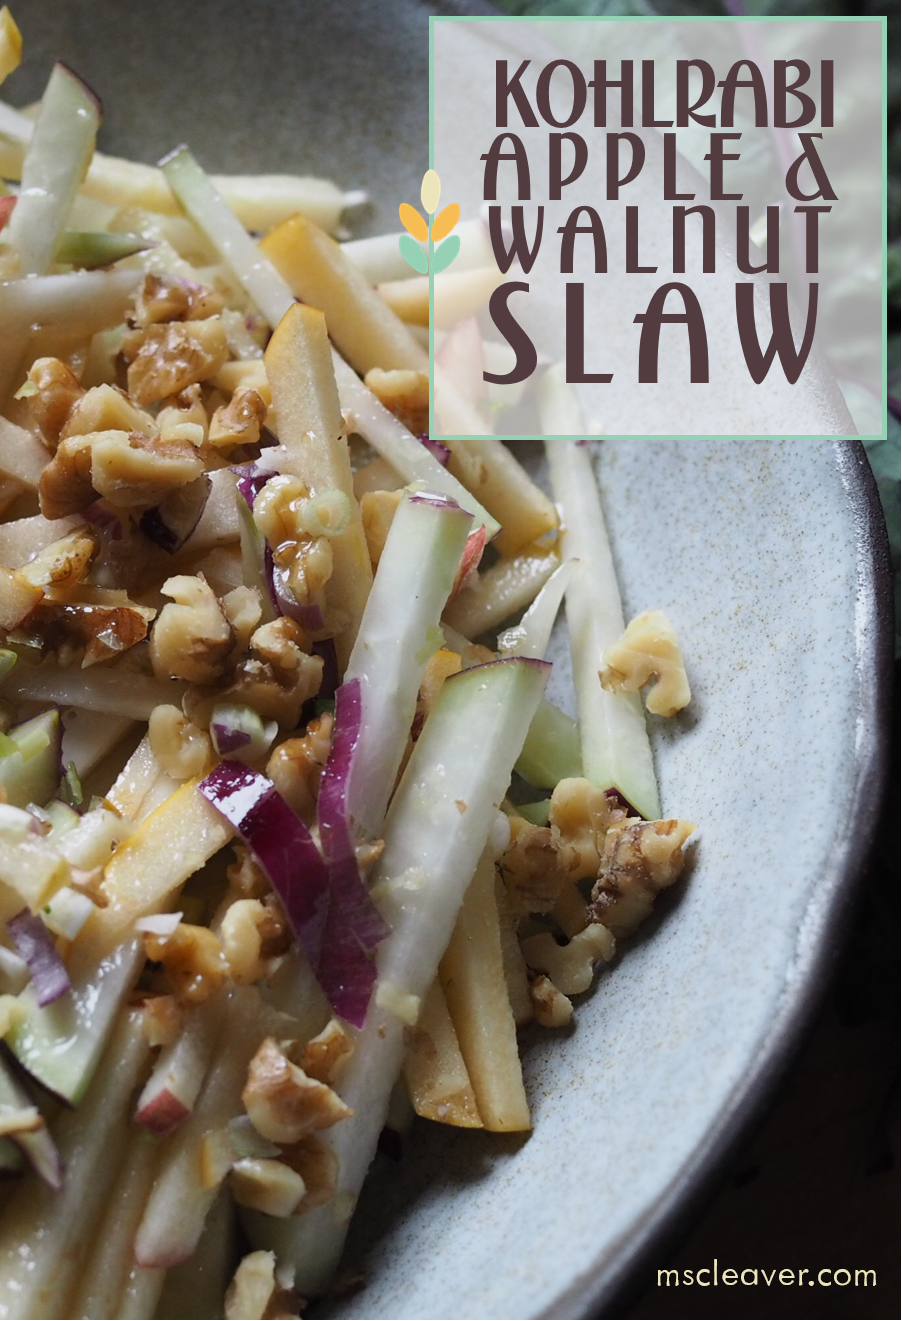 Kohlrabi Apple Walnut Slaw v2.png